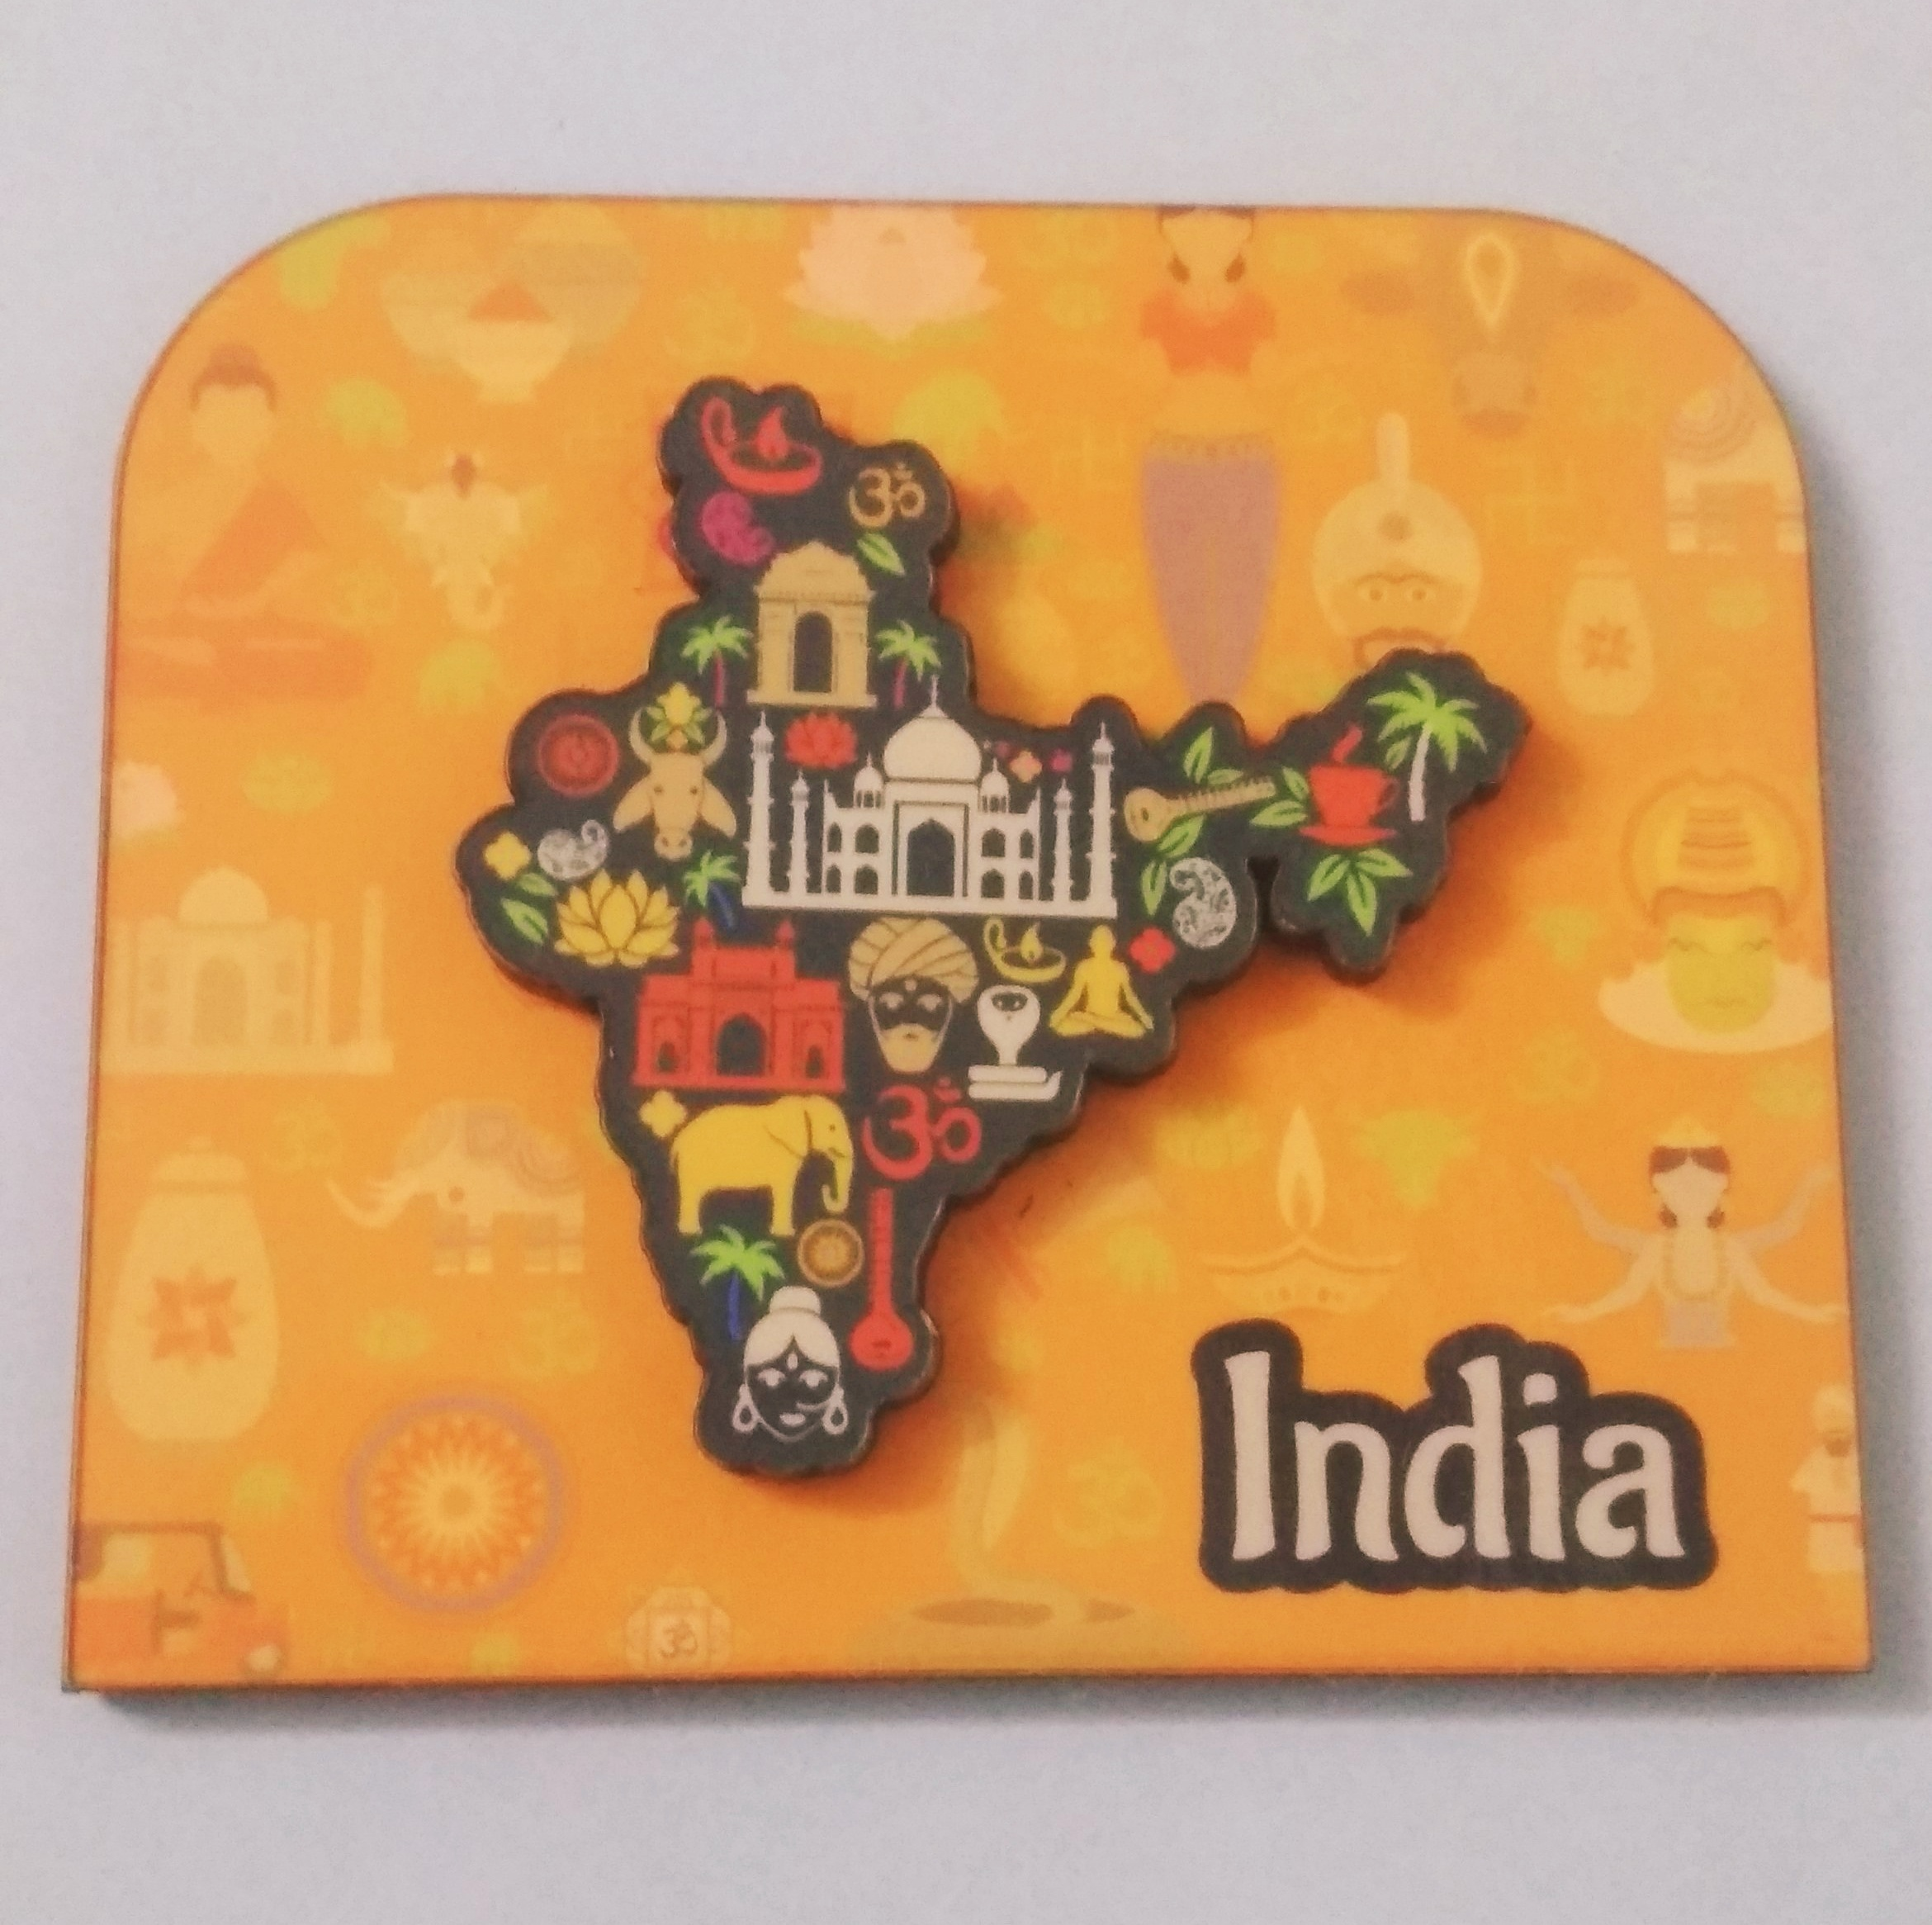 Metalcraft fridge magnet, Indian souvenir, Indian map.